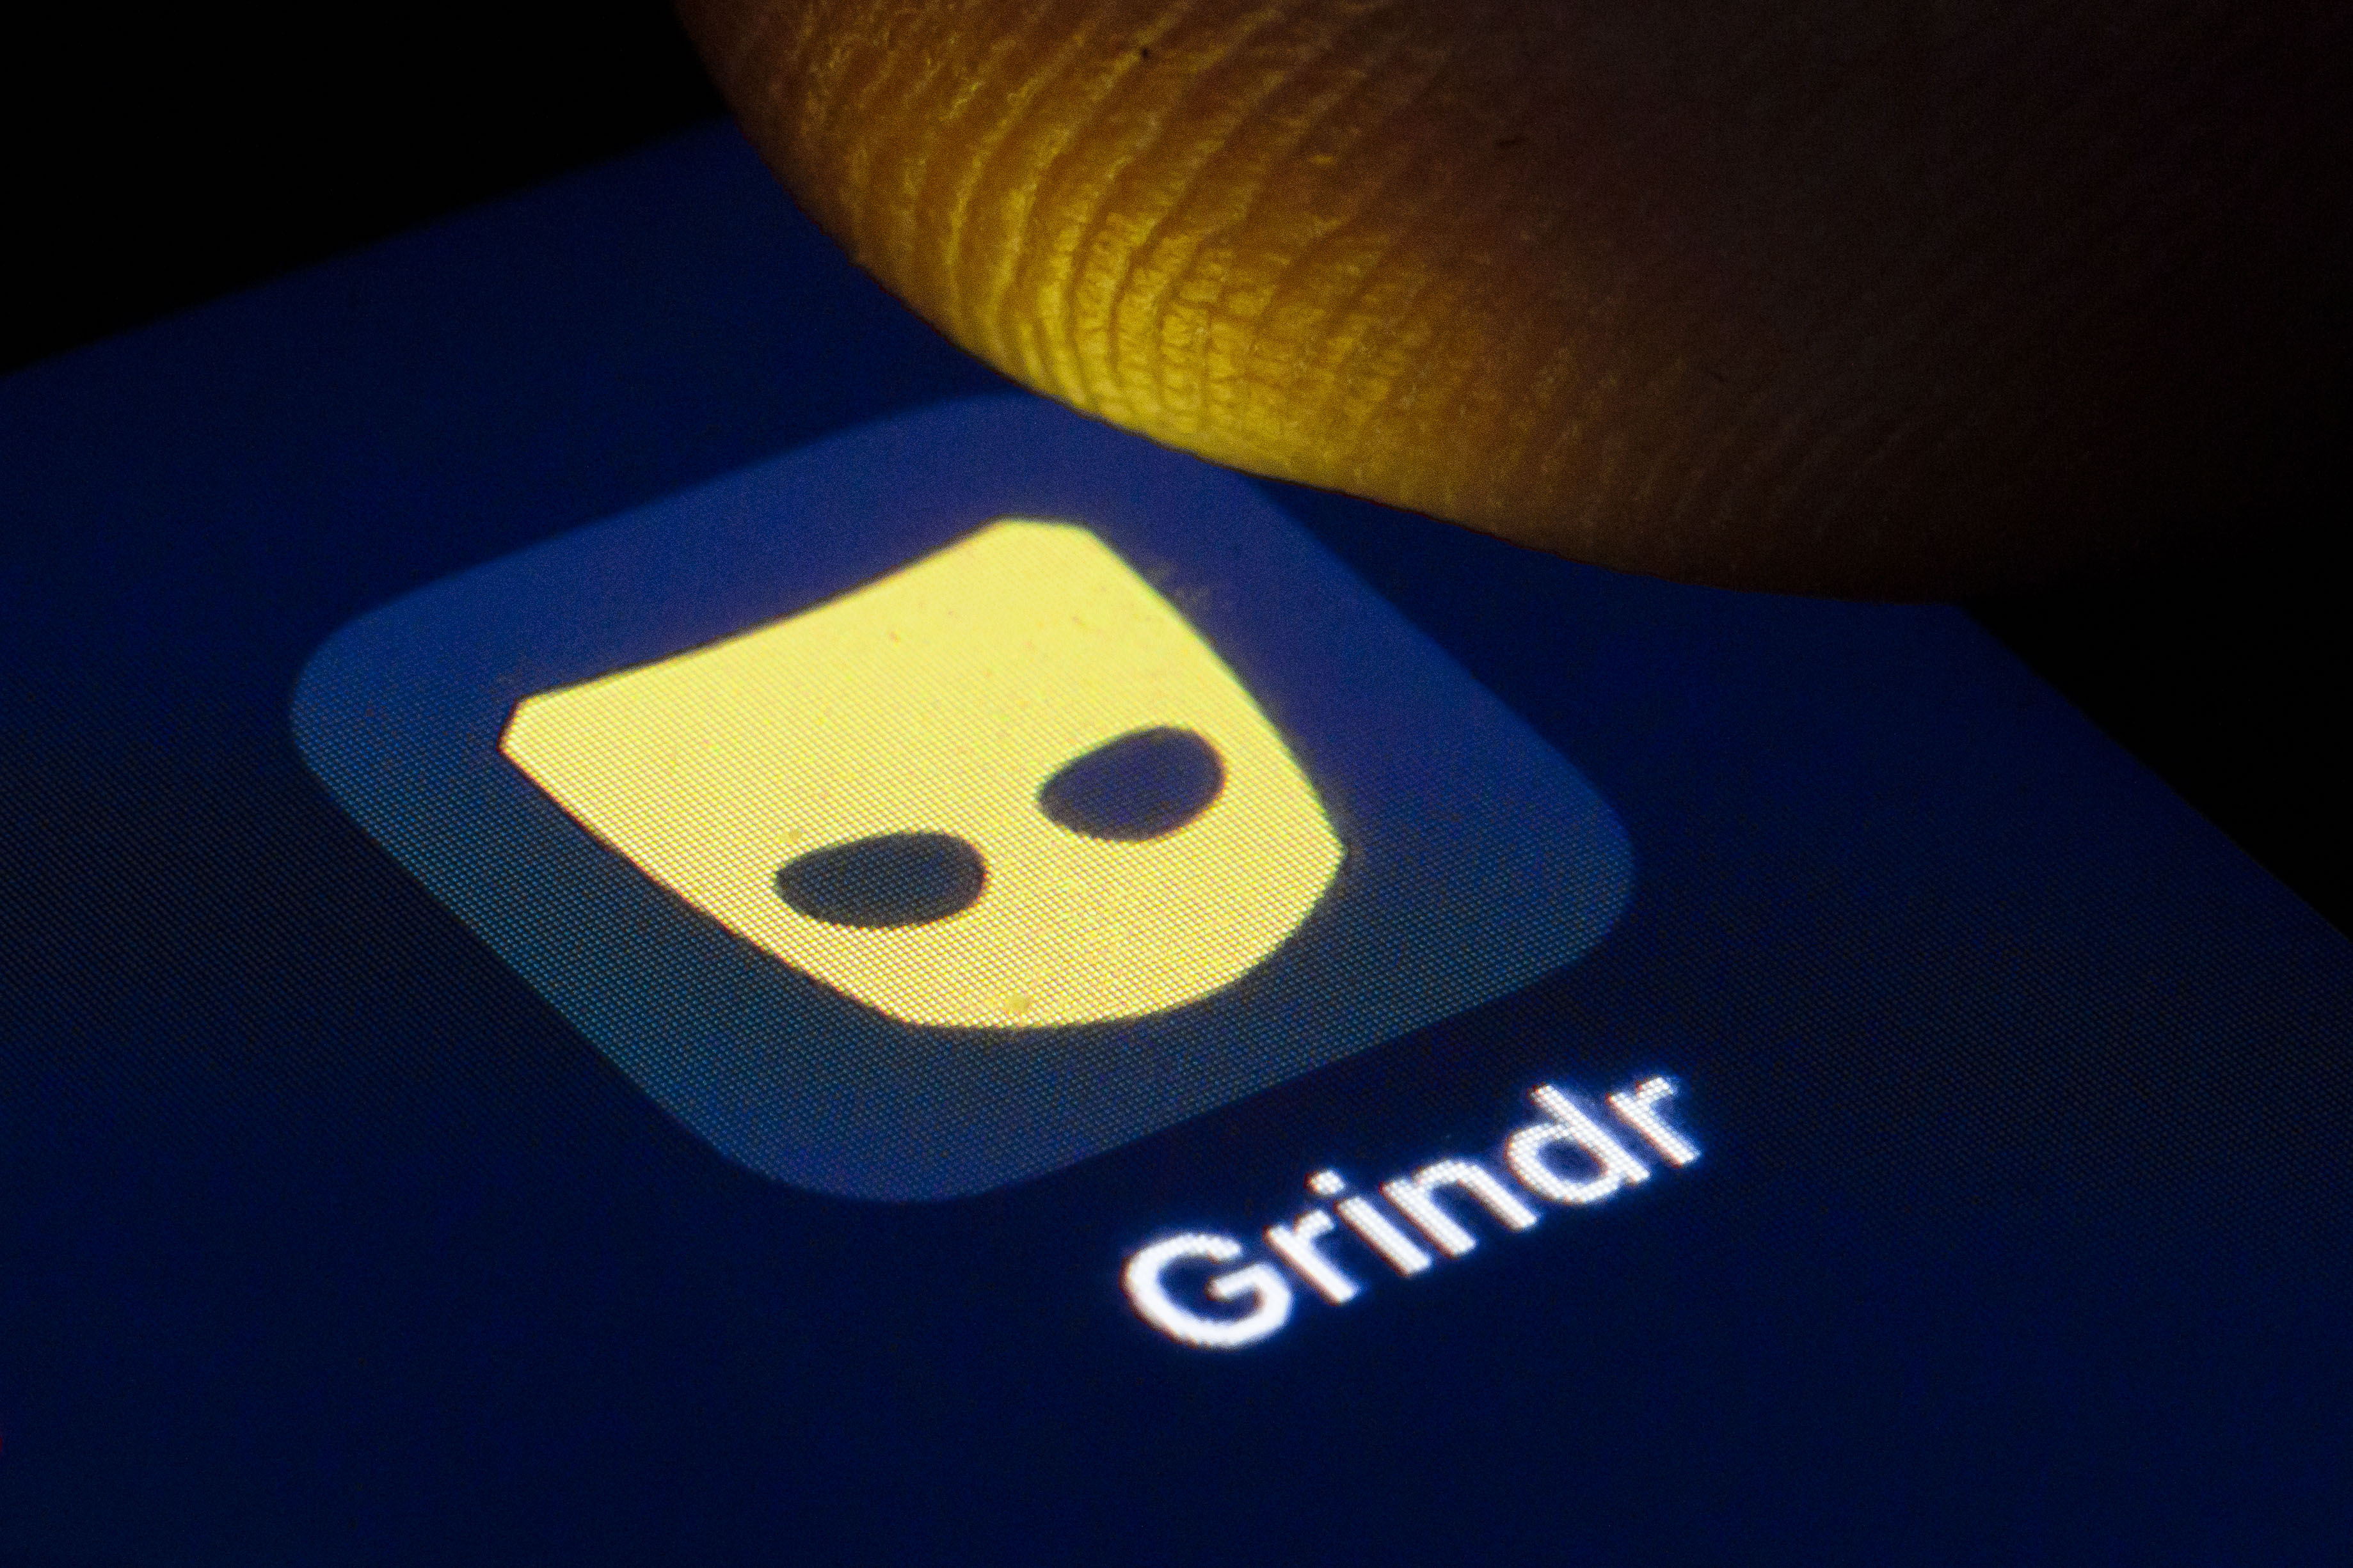 Grindr flaw allowed hijacking accounts with just an email